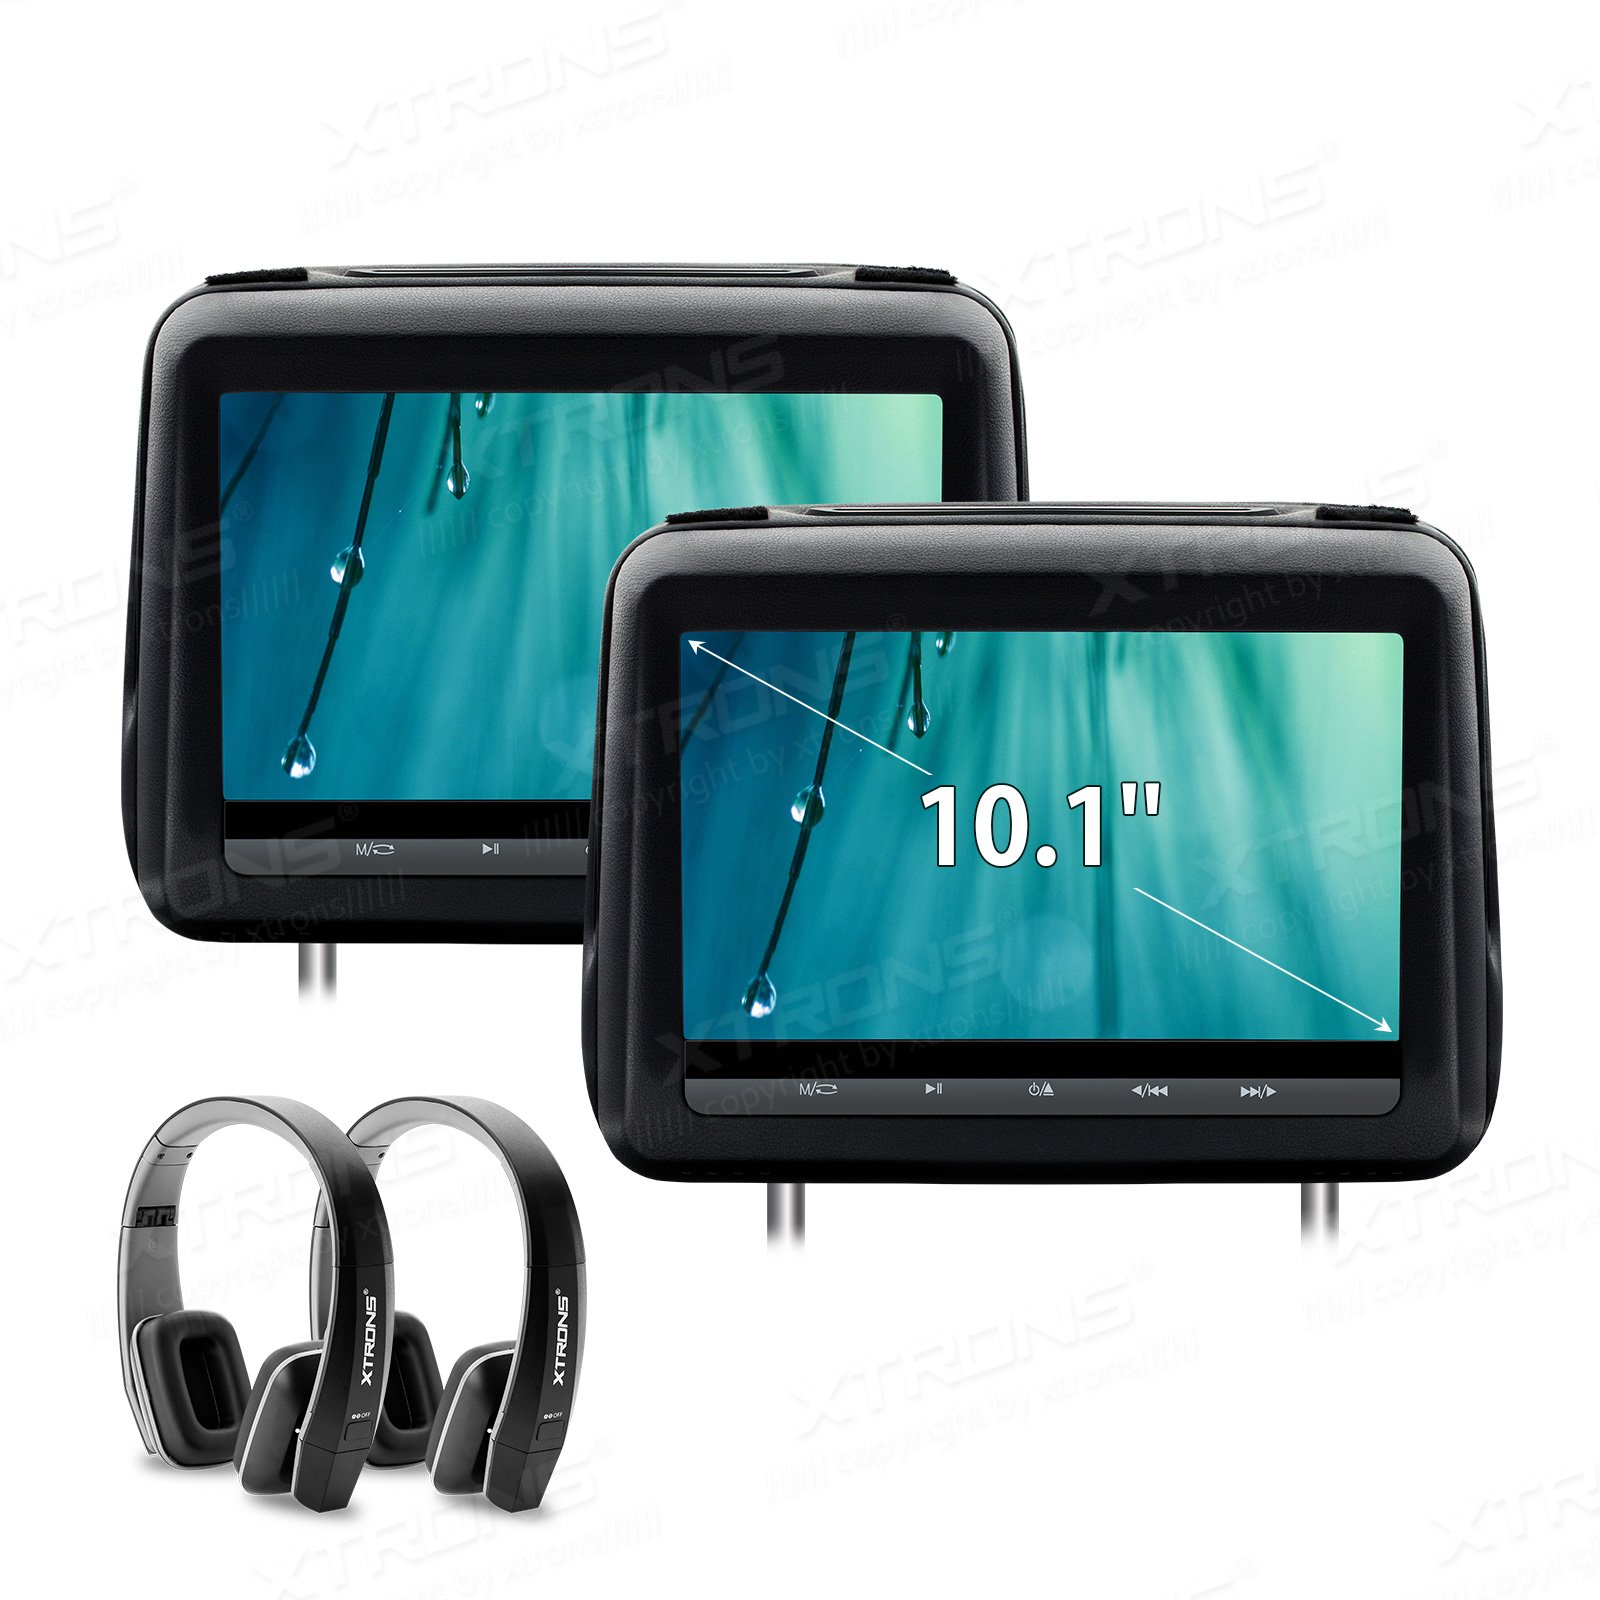 XTRONS 10.1 Inch HD Digital Screen Leather Cover Car Headrest DVD Player 1080P Video with HDMI Port Black New Version IR Headphones Included